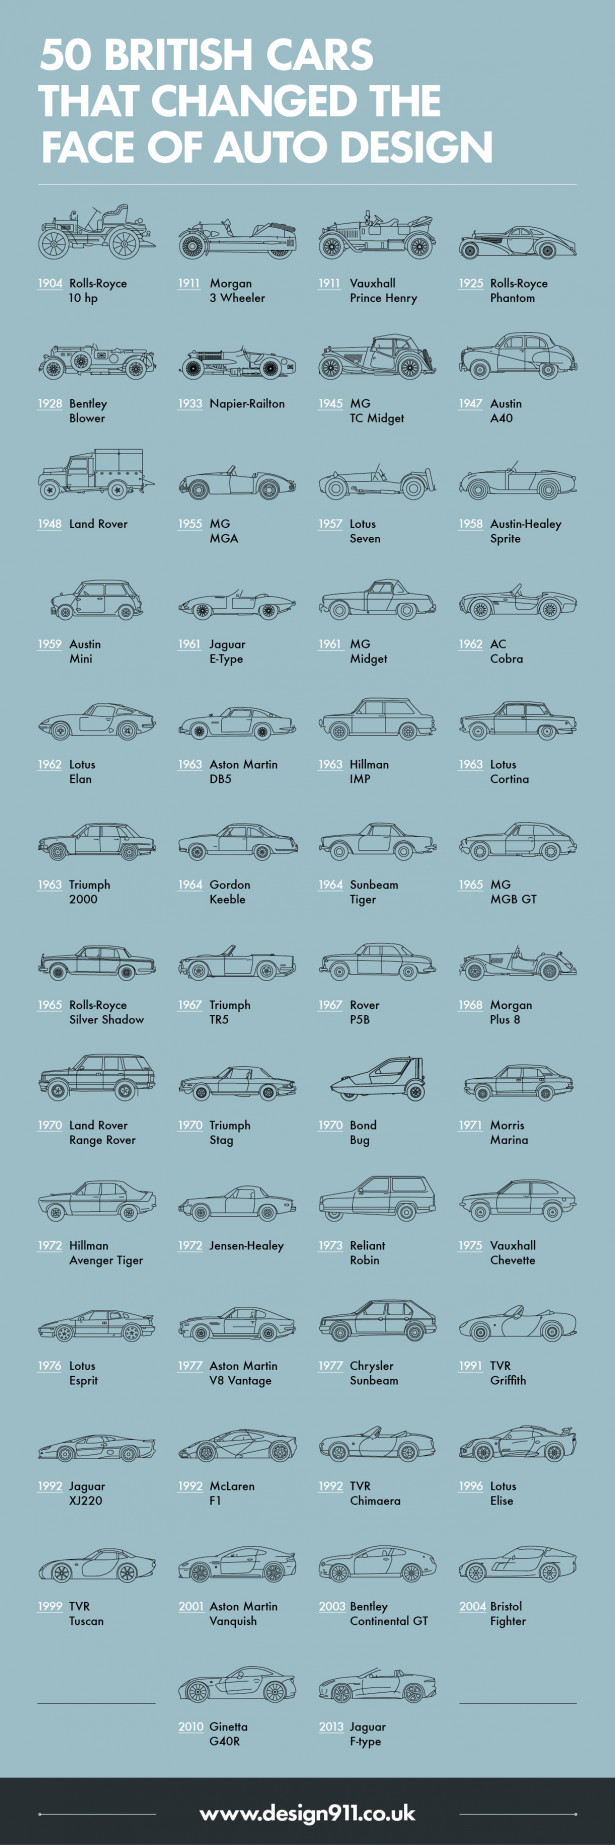 50 British Cars Which Changed The Face of Auto Design